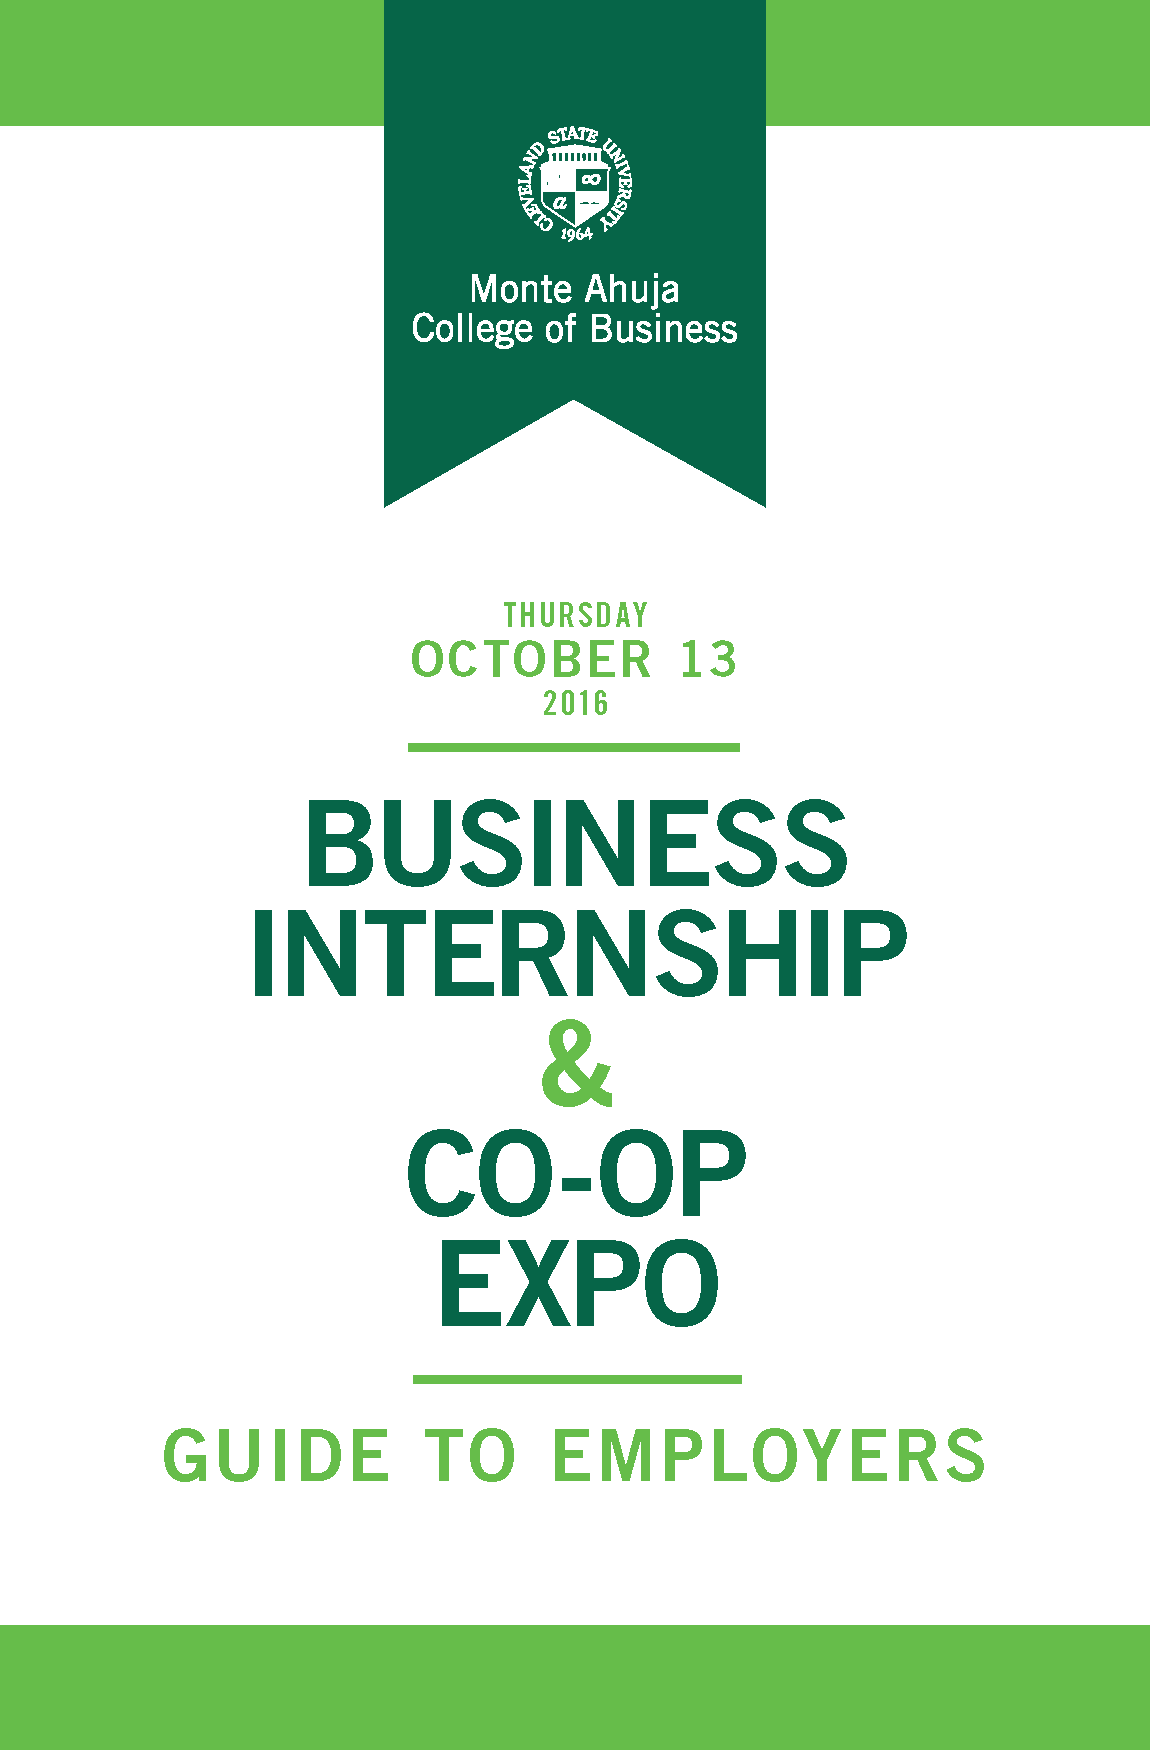 2016 Business Internship & Co-op Expo Guide to Employers